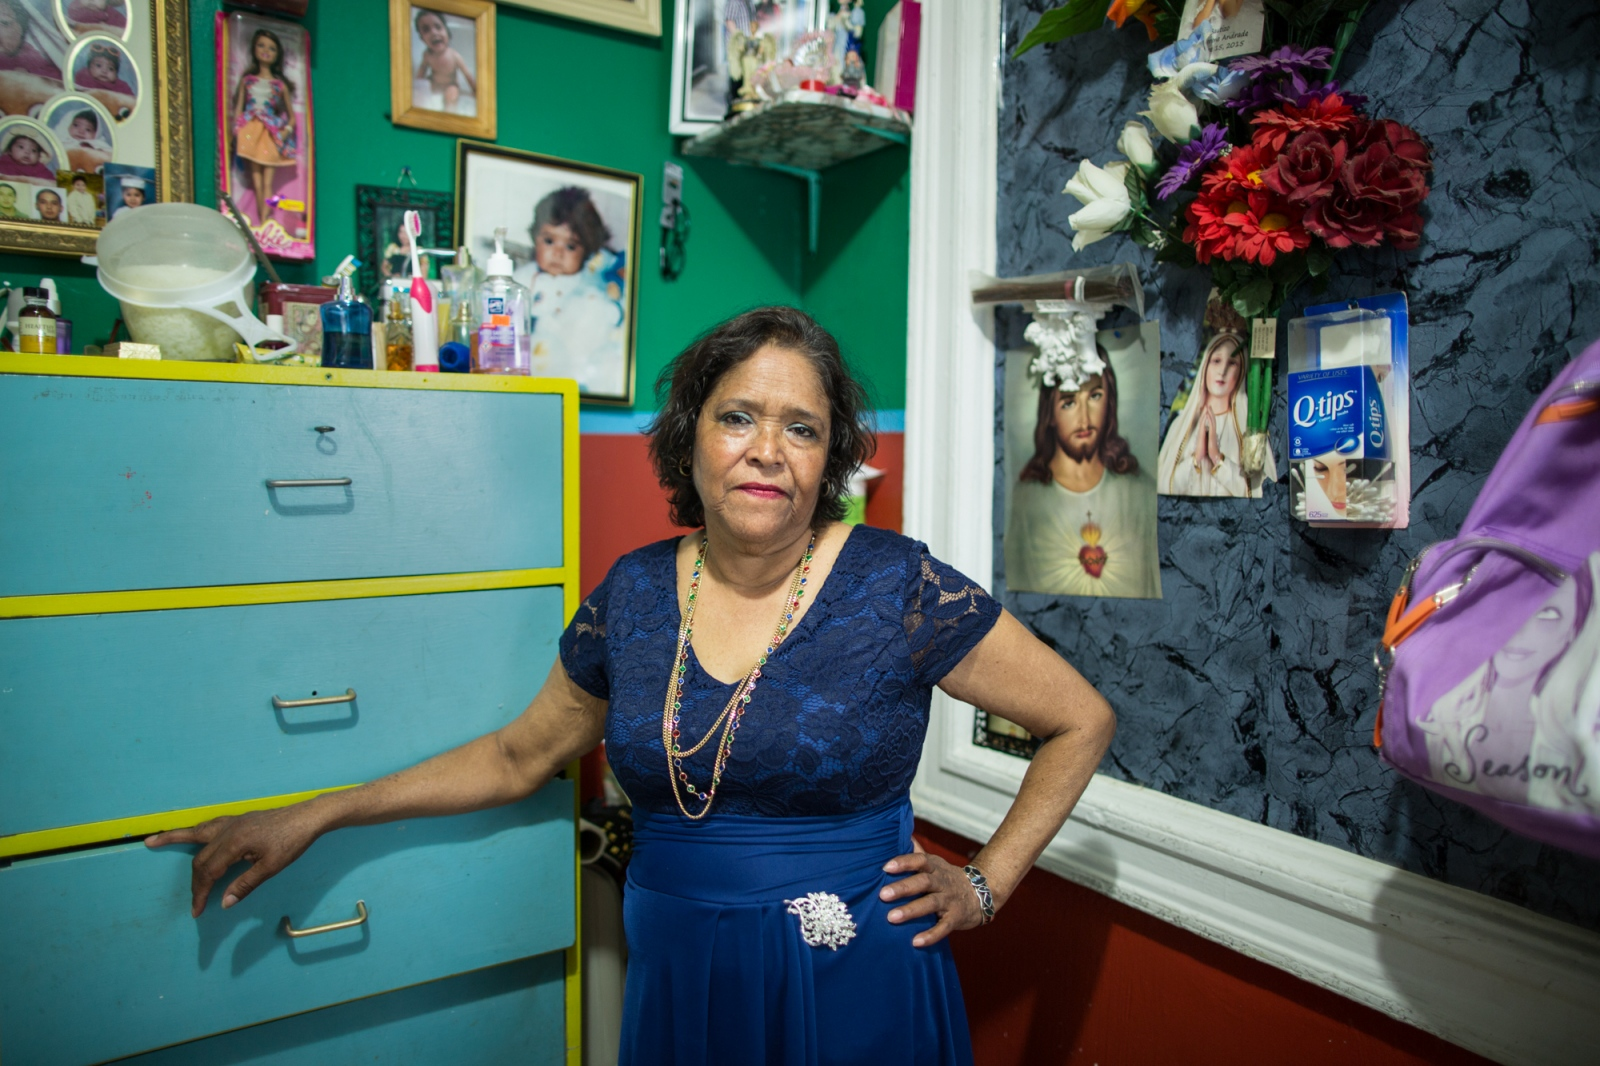 Irma Verduzco is from Morelia, Michoacán, México. She came to New York 26 years ago, crossed the border with one of her two children. Actually, she has three jobs: cleaning houses, as a babysitter and picking up plastic bottles out on the streets. She lives in Sunset Park, Brooklyn, New York.